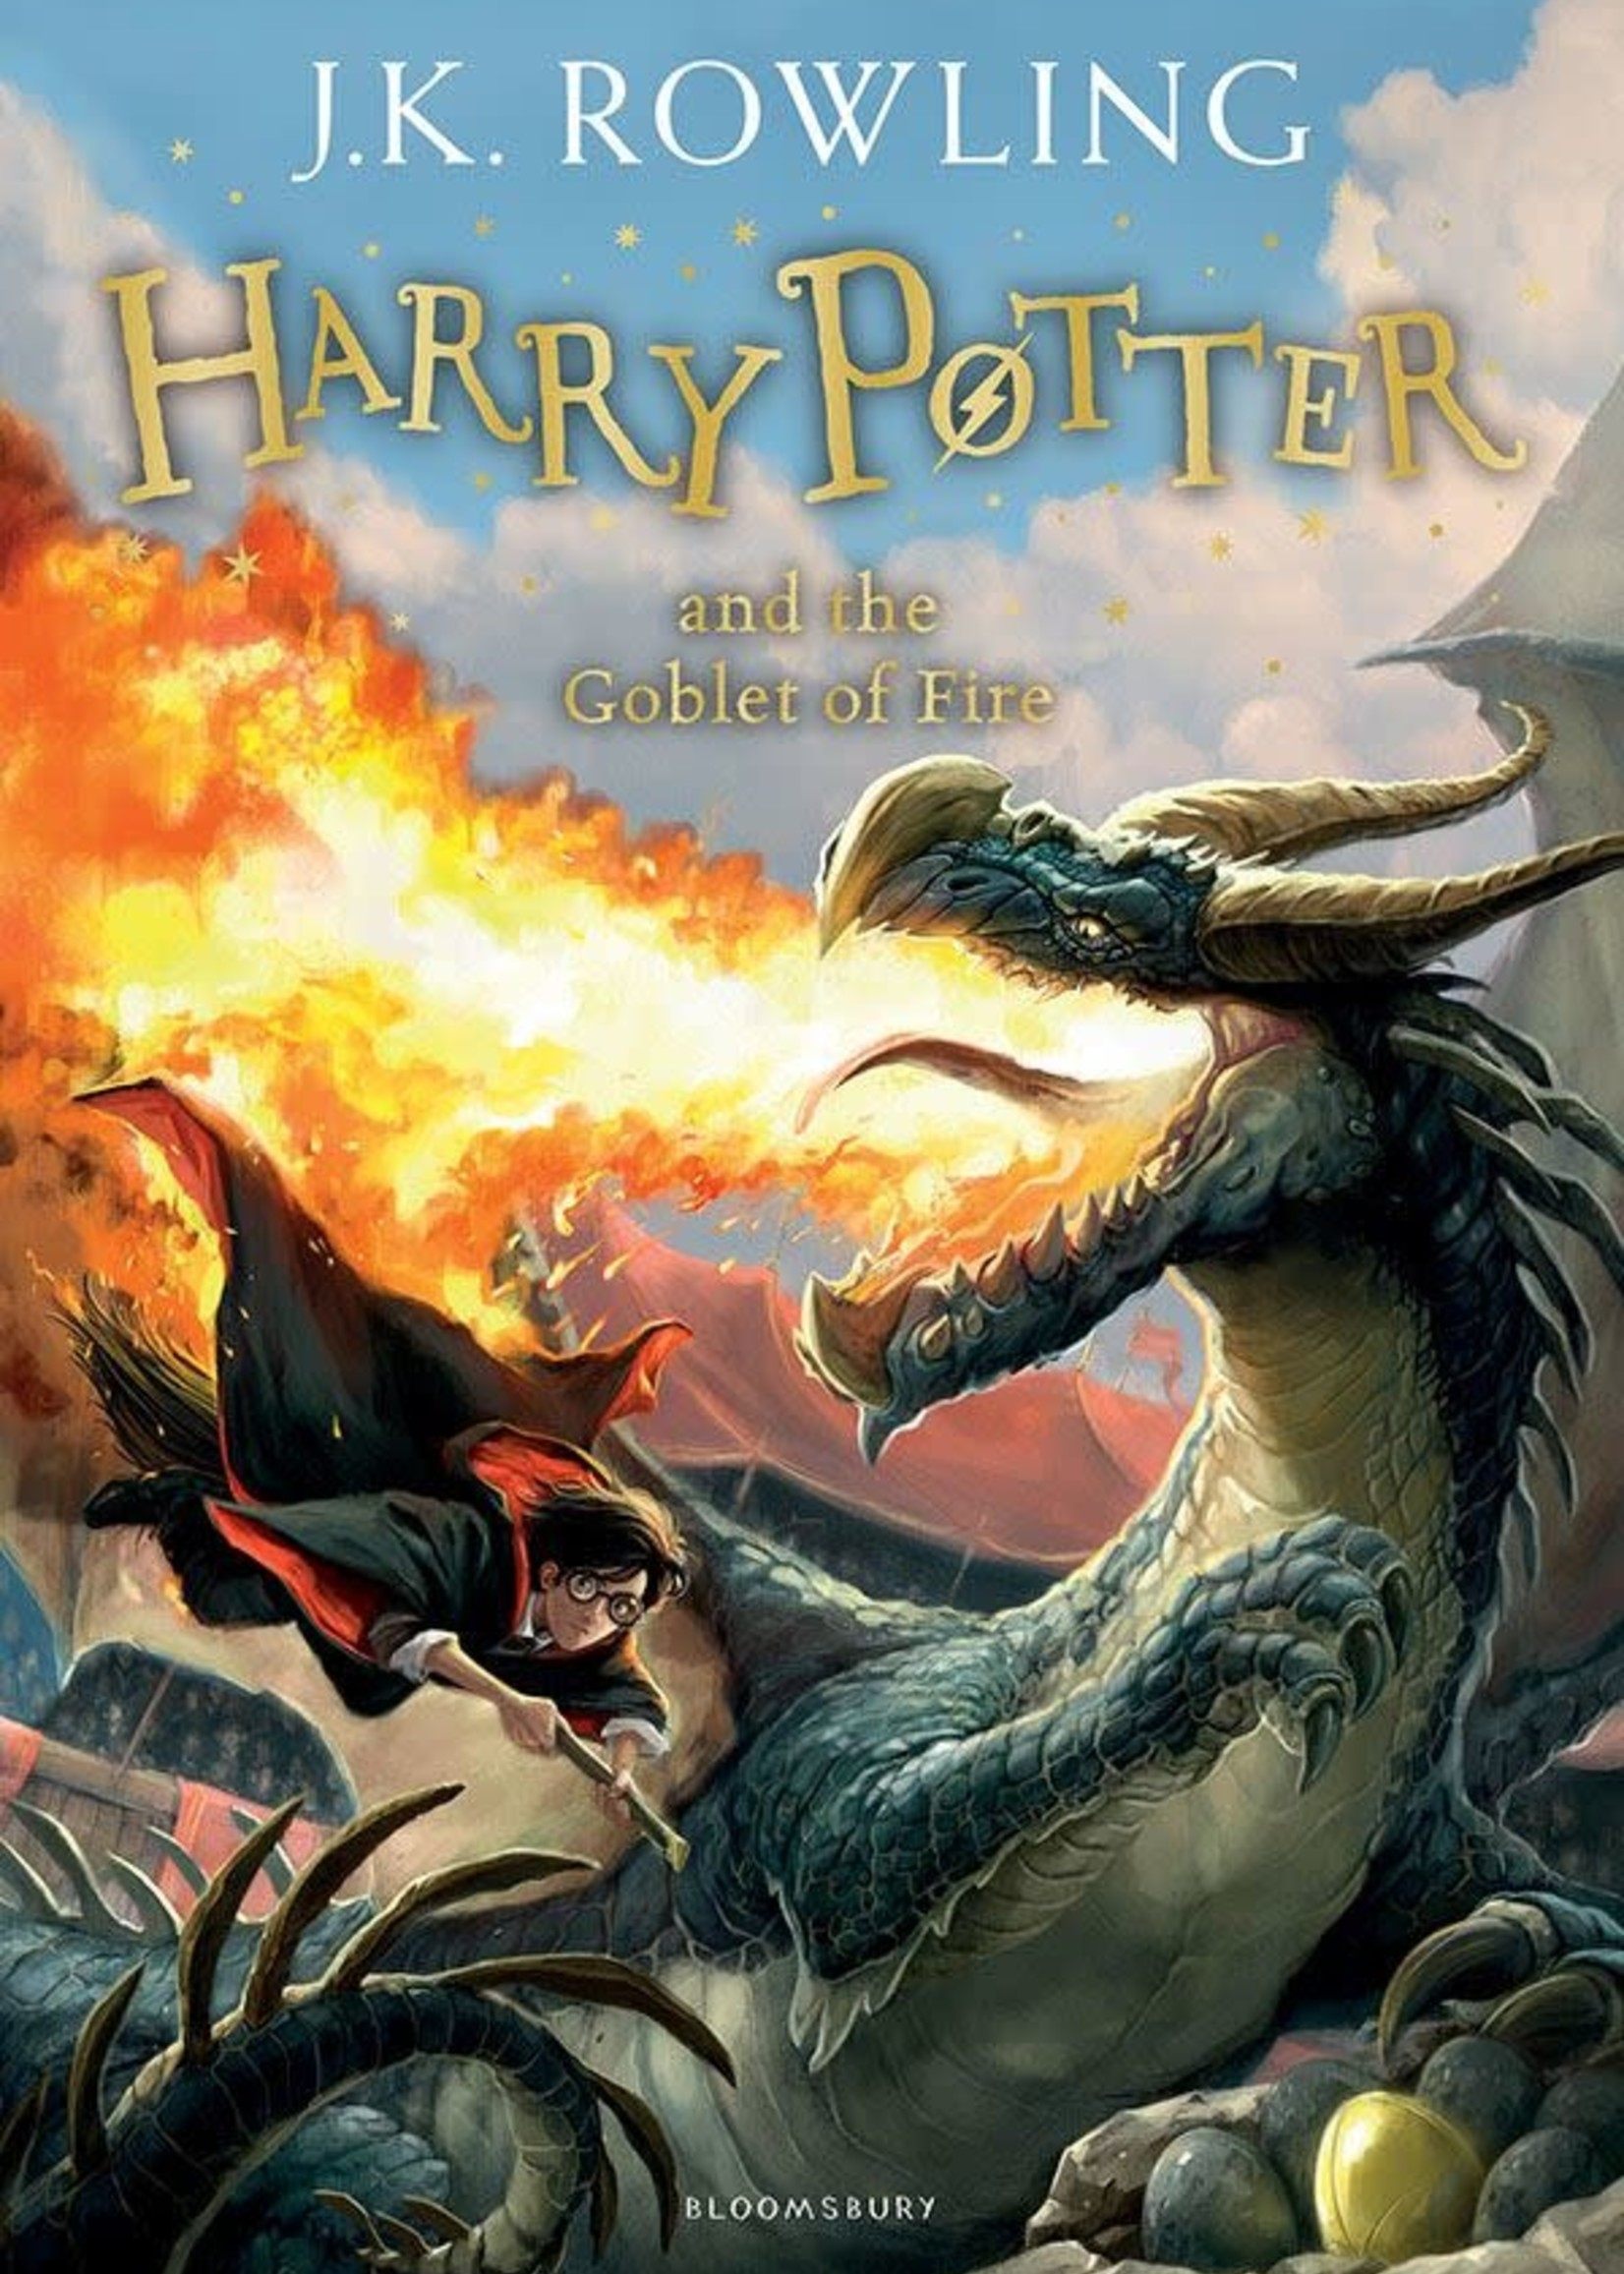 Harry Potter and the Goblet of Fire (Harry Potter #4) by J.K. Rowling